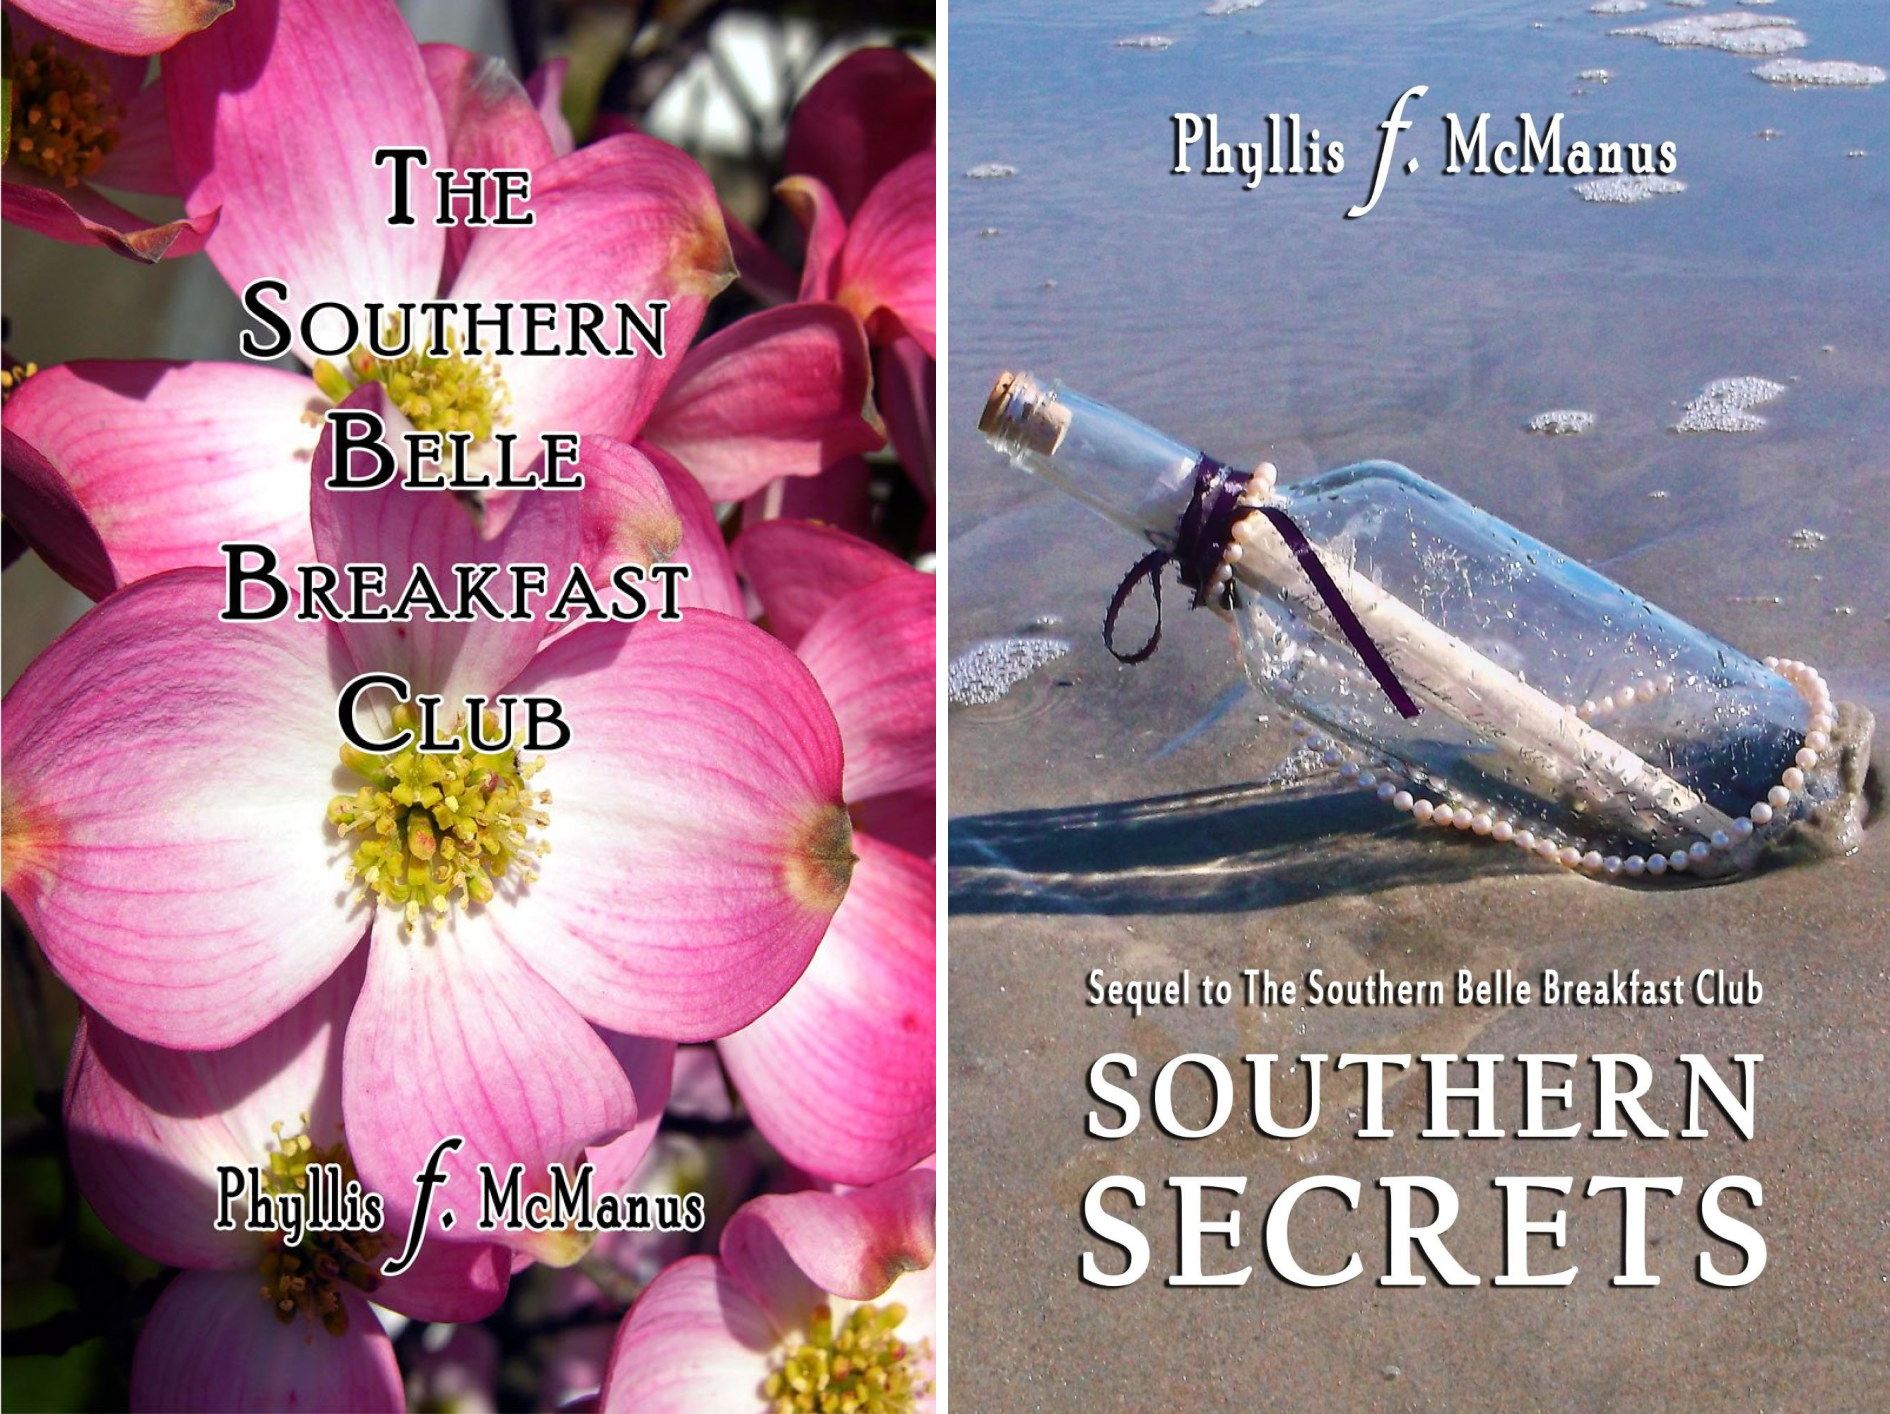 The Southern Belle breakfast Club (2 Book Series)